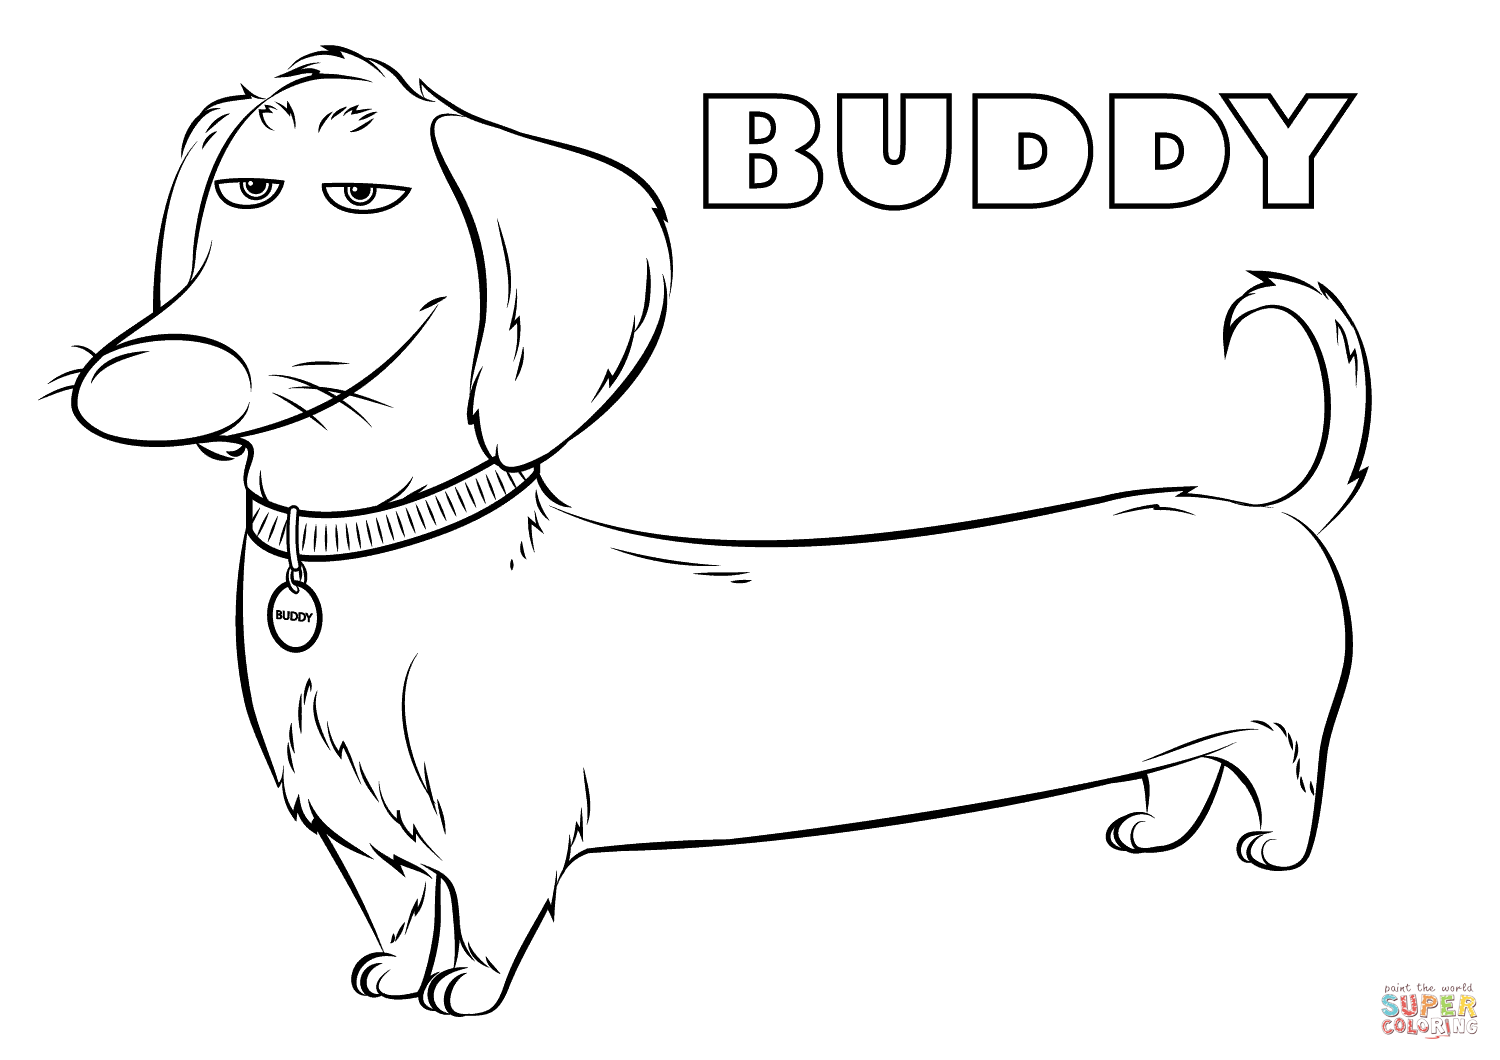 Buddy From The Secret Life Of Pets Coloring Page